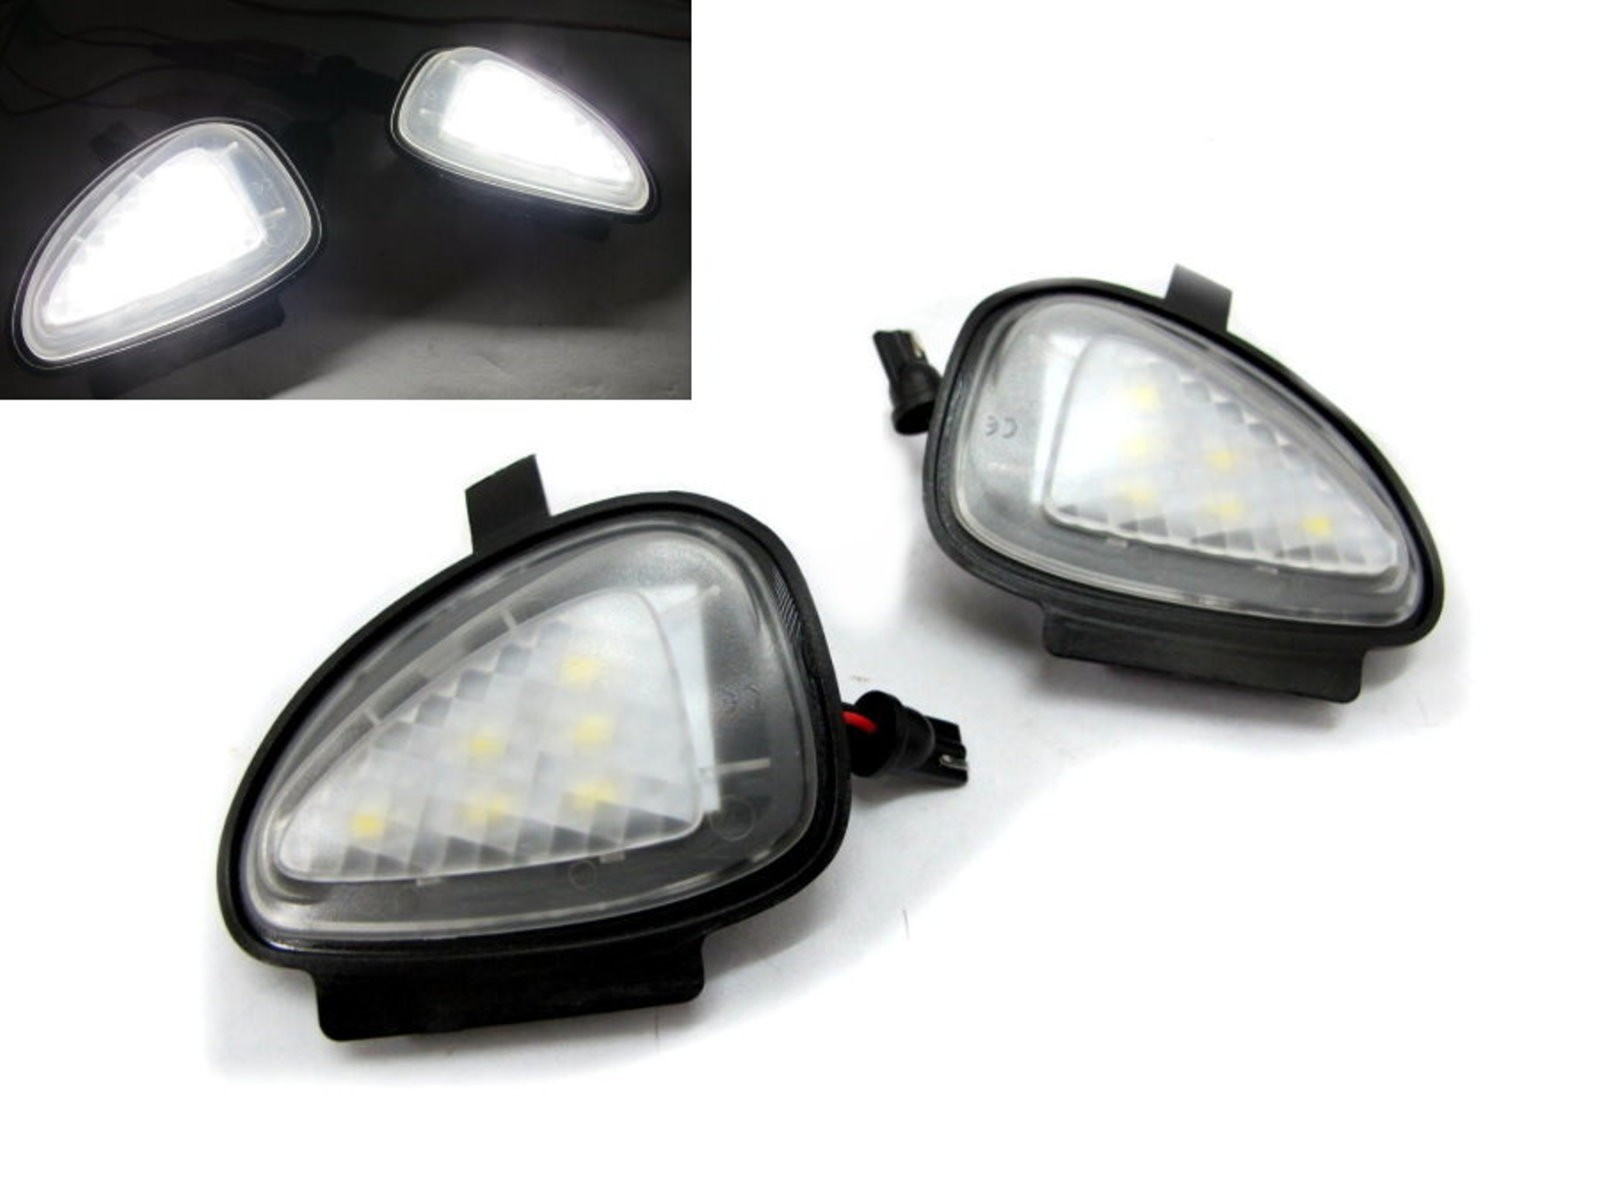 CrazyTheGod Golf CABRIOLET 2012-Present Convertible 2D LED Under Side Mirror Puddle Lights Black for VW Volkswagen